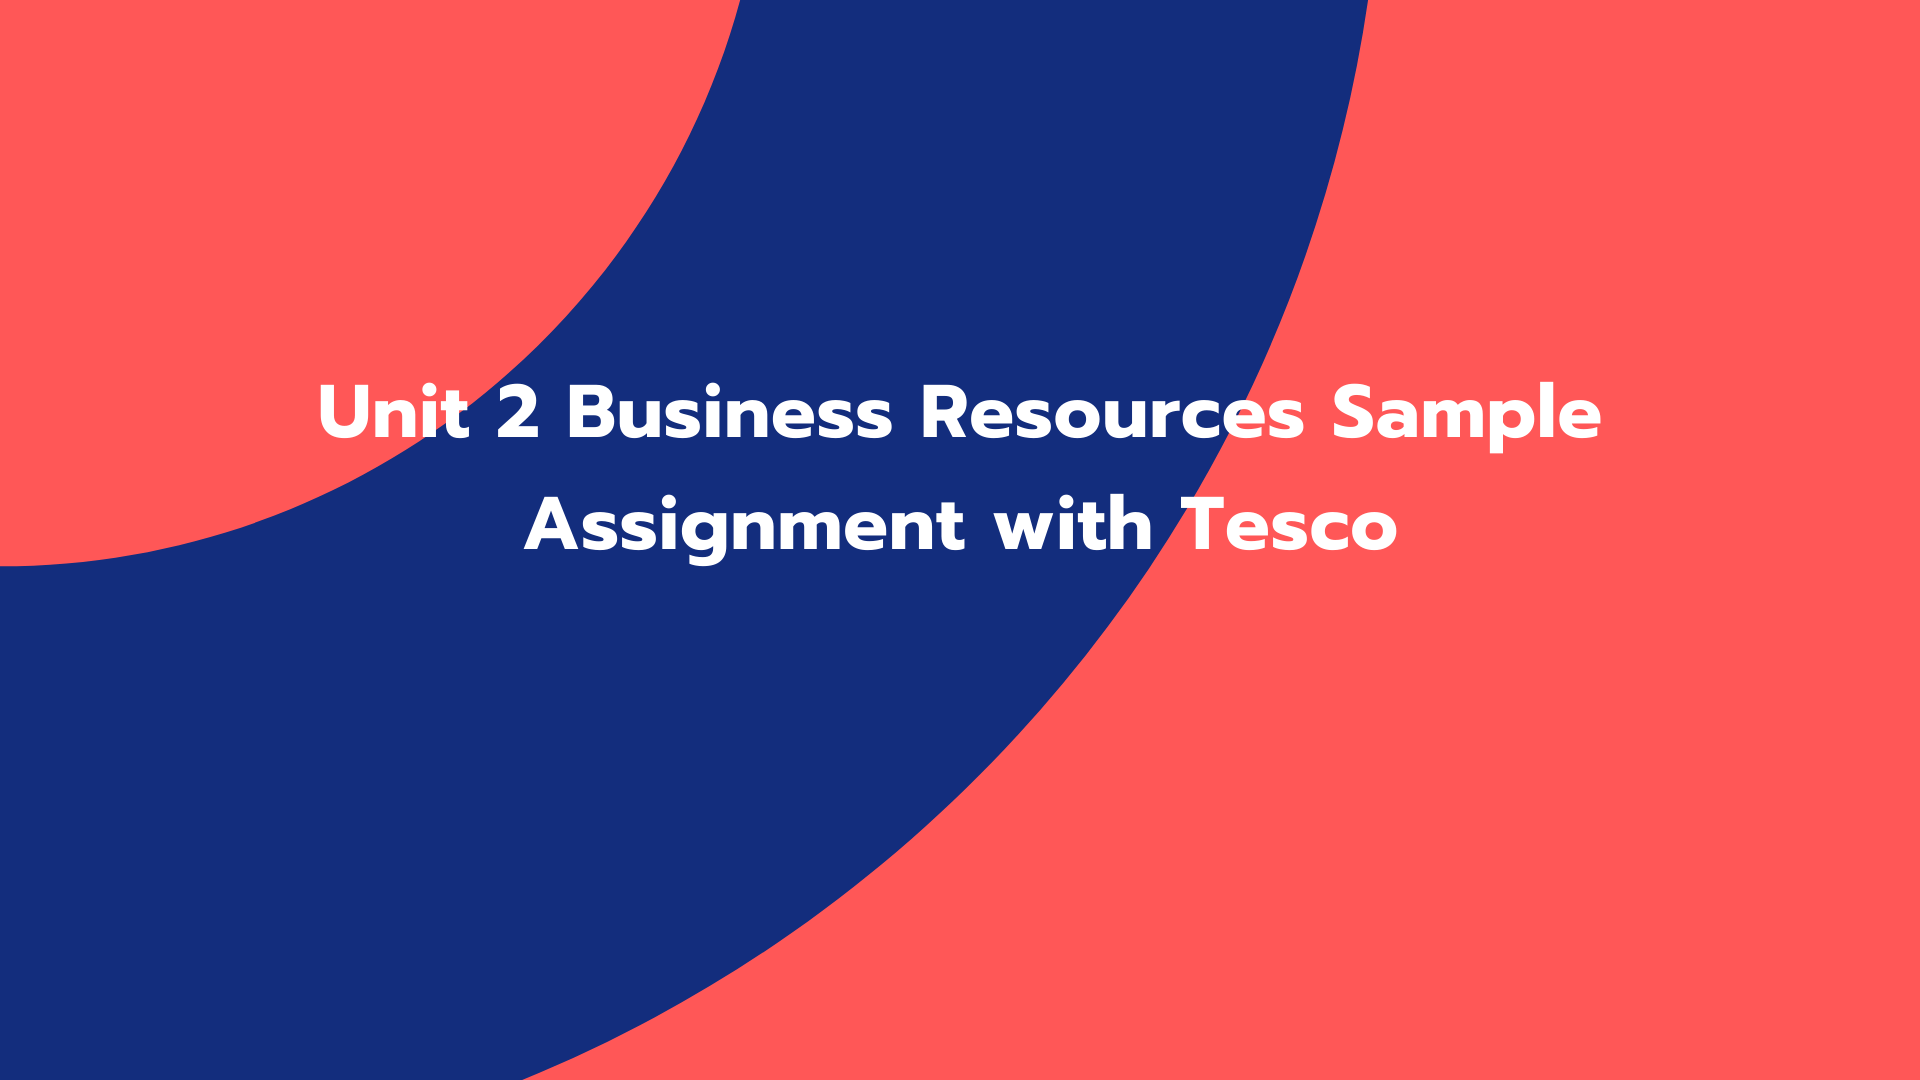 Unit 2 Business Resources Sample Assignment with Tesco